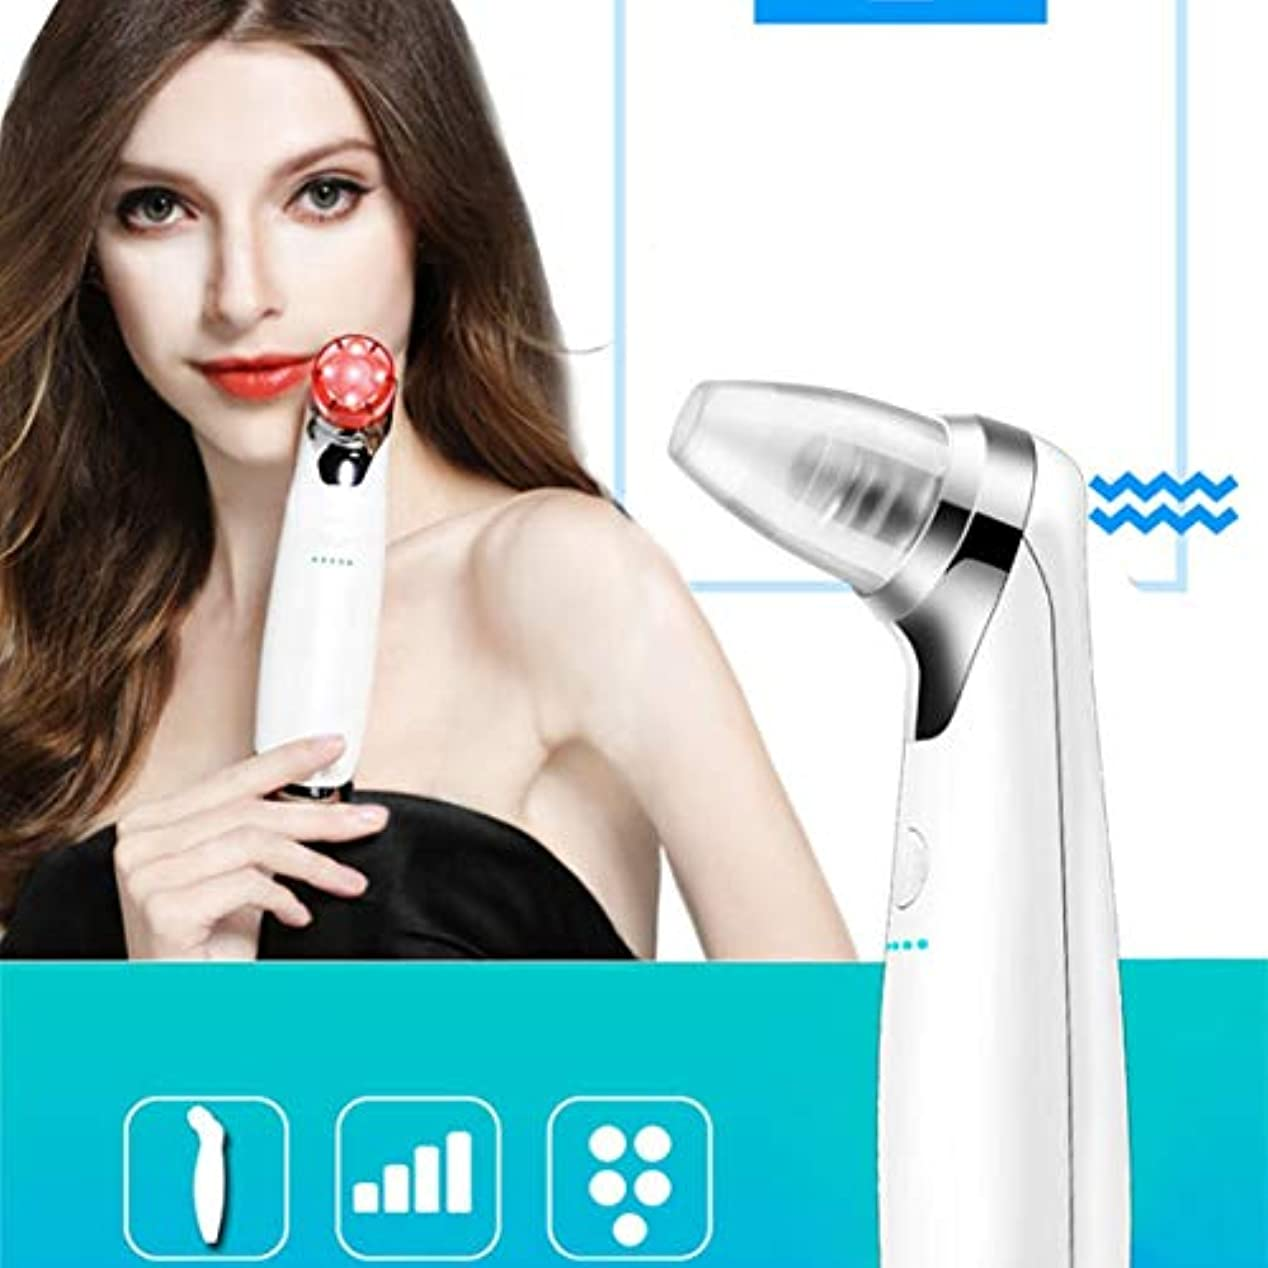 割り当てスクラブ施設Intercorey Pore Vacuum Electric Blackheads Remover Tool Acne Cleanser Suction Extractor Microdermabrasion Machine